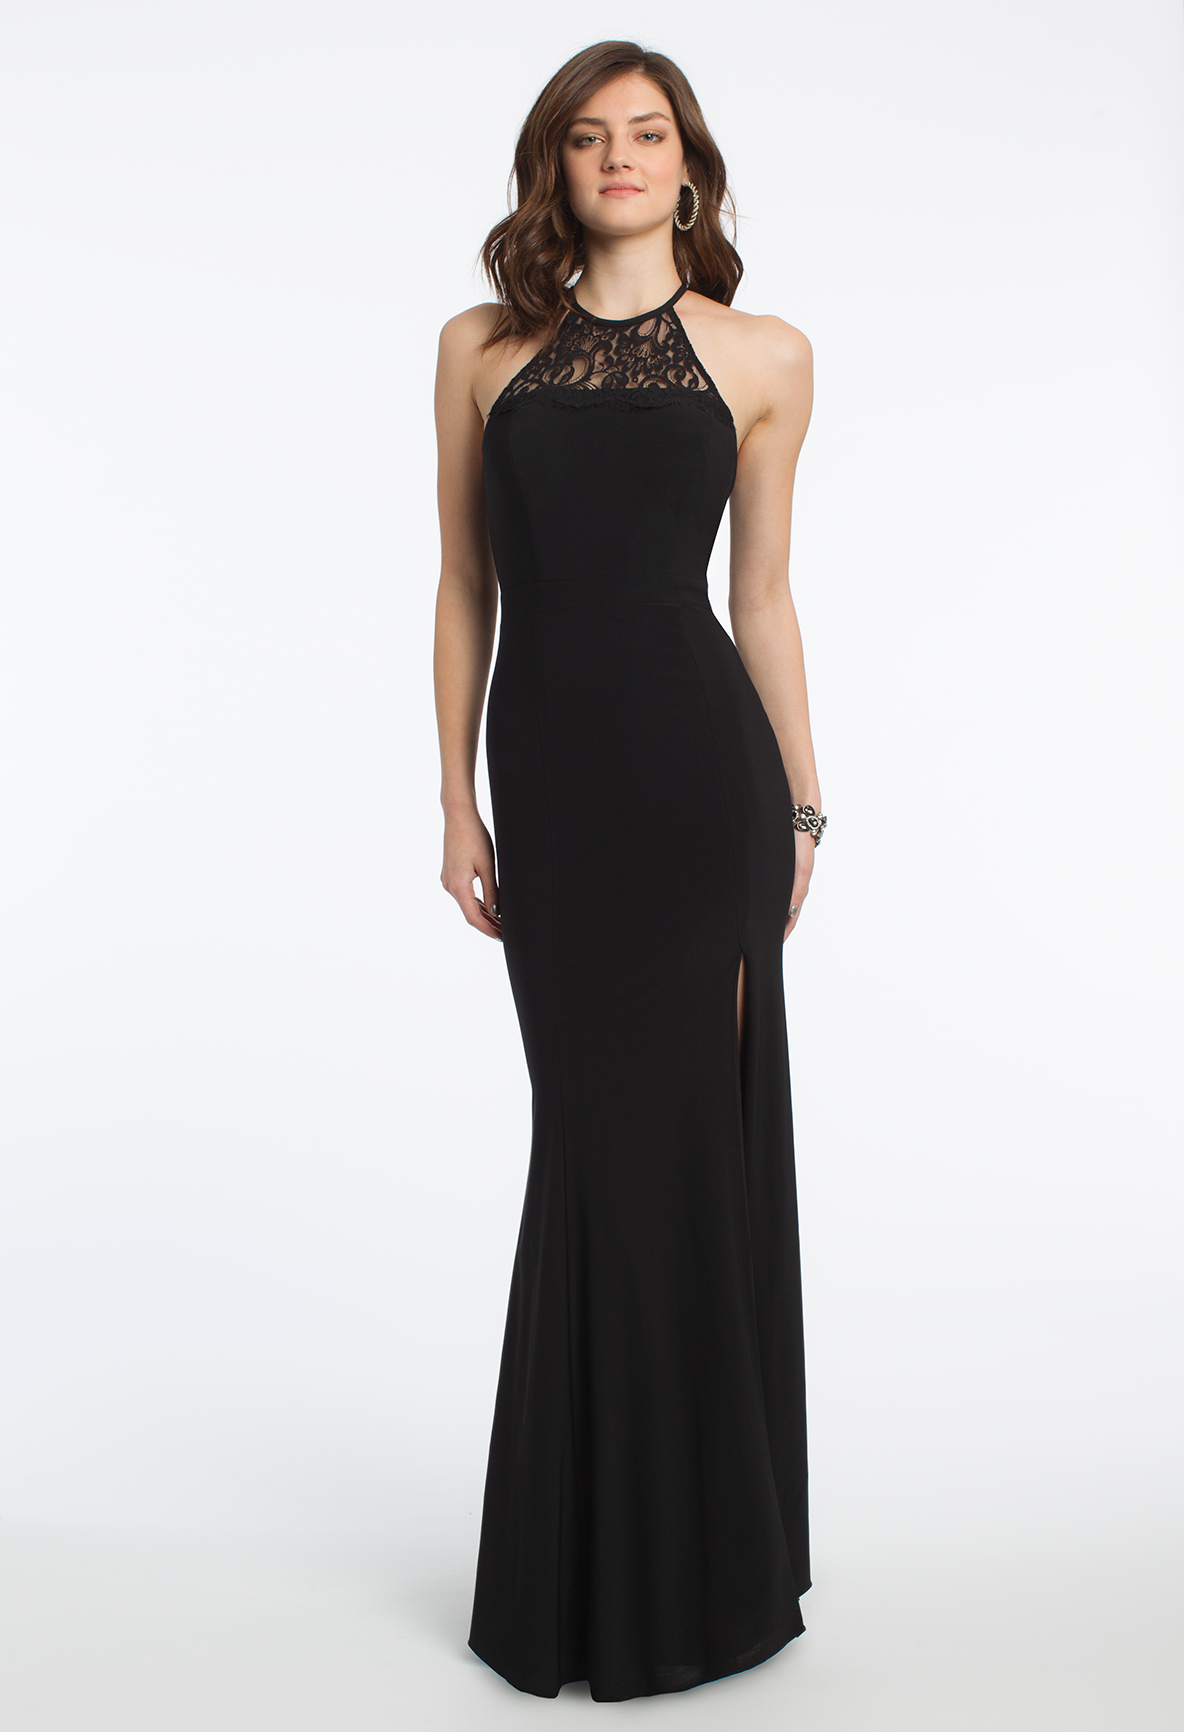 Look Lavish In This Lovely Long Evening Dress Embrace Your Black Tie Event